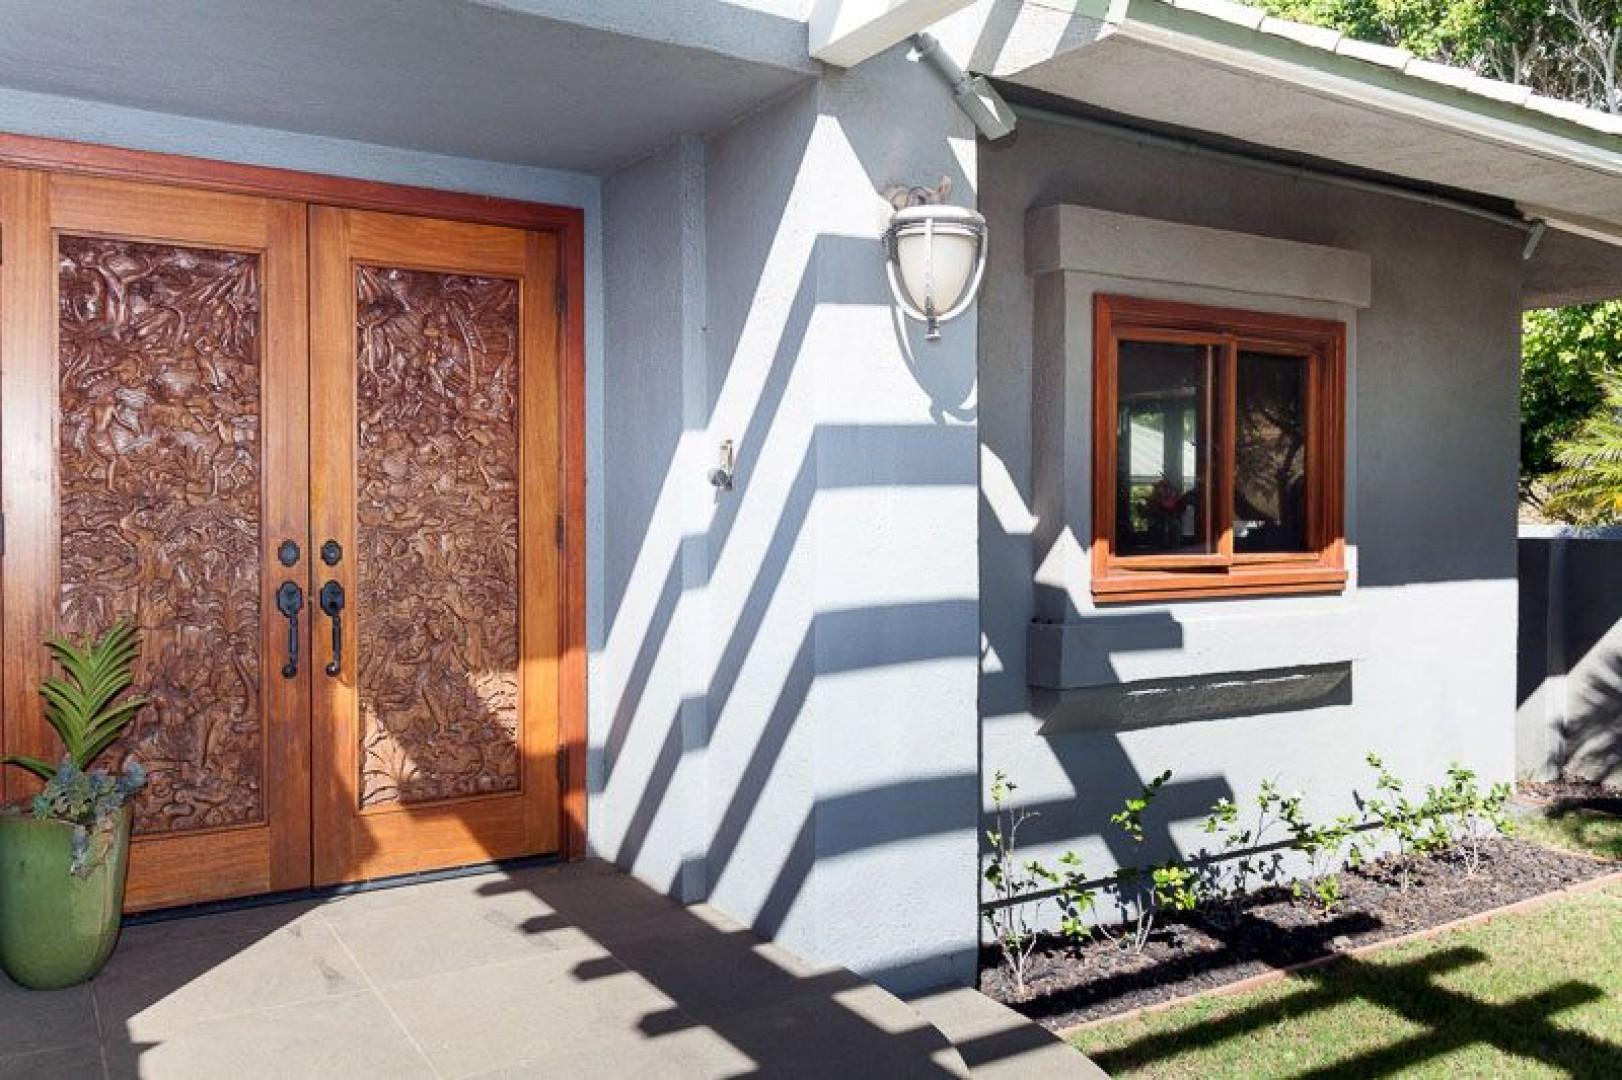 Beautifully hand carved door welcomes you inside this home